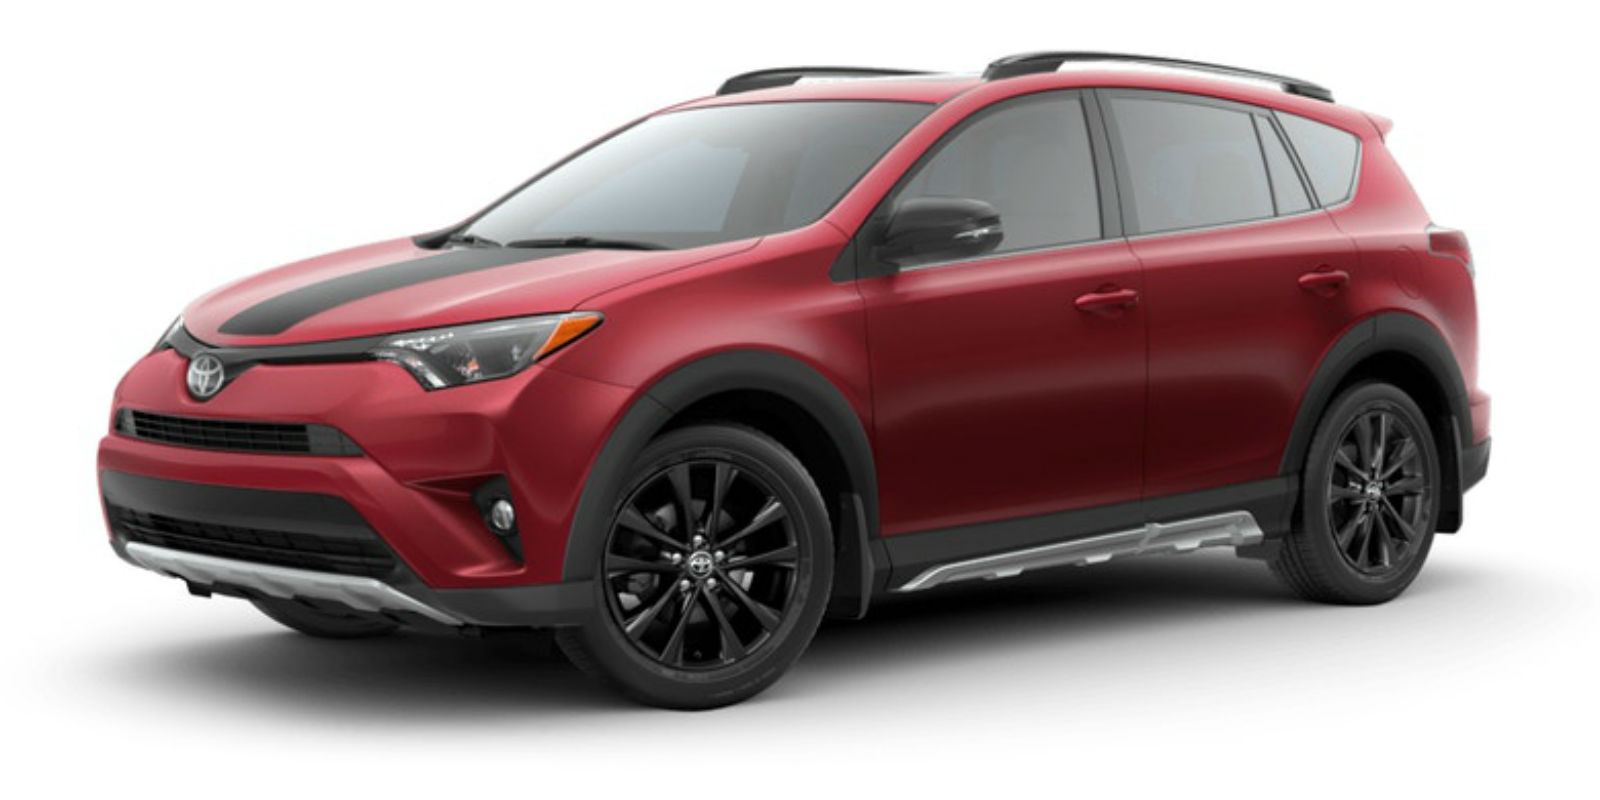 What Are The Color Options Of The 2018 Toyota Rav4 Cava